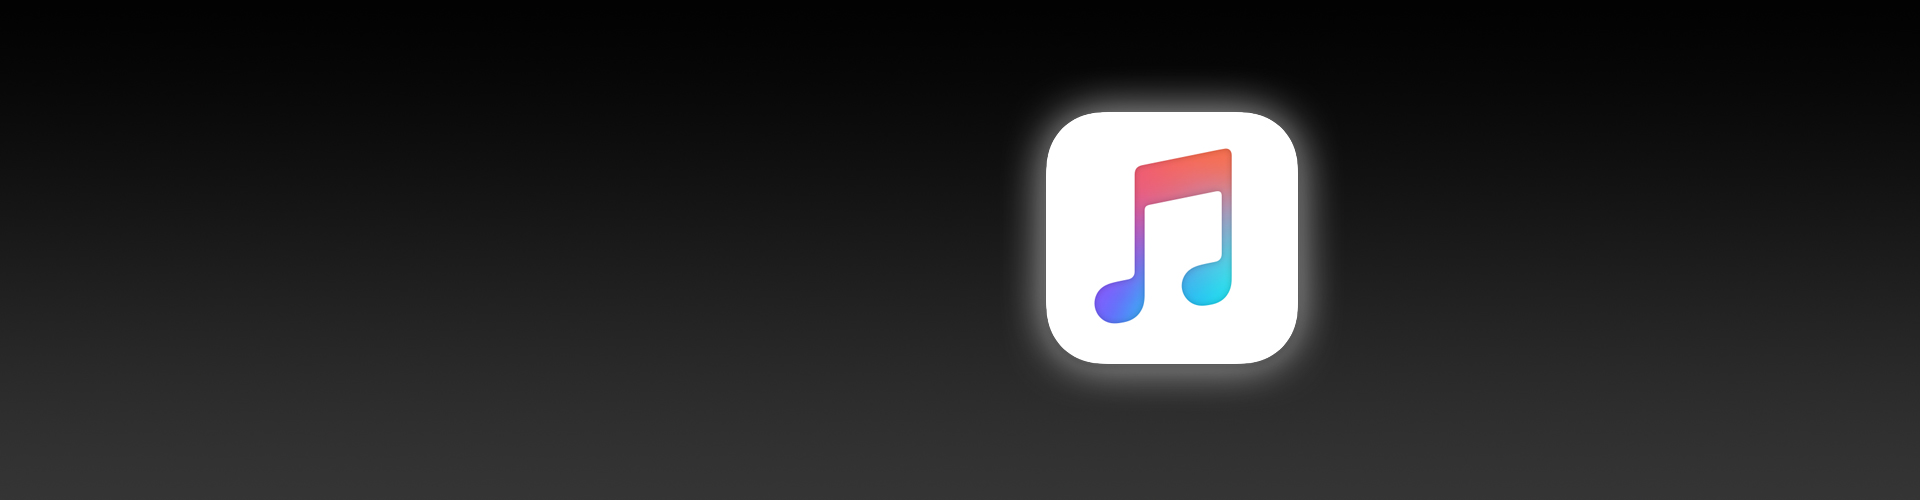 apple-music-slider-21